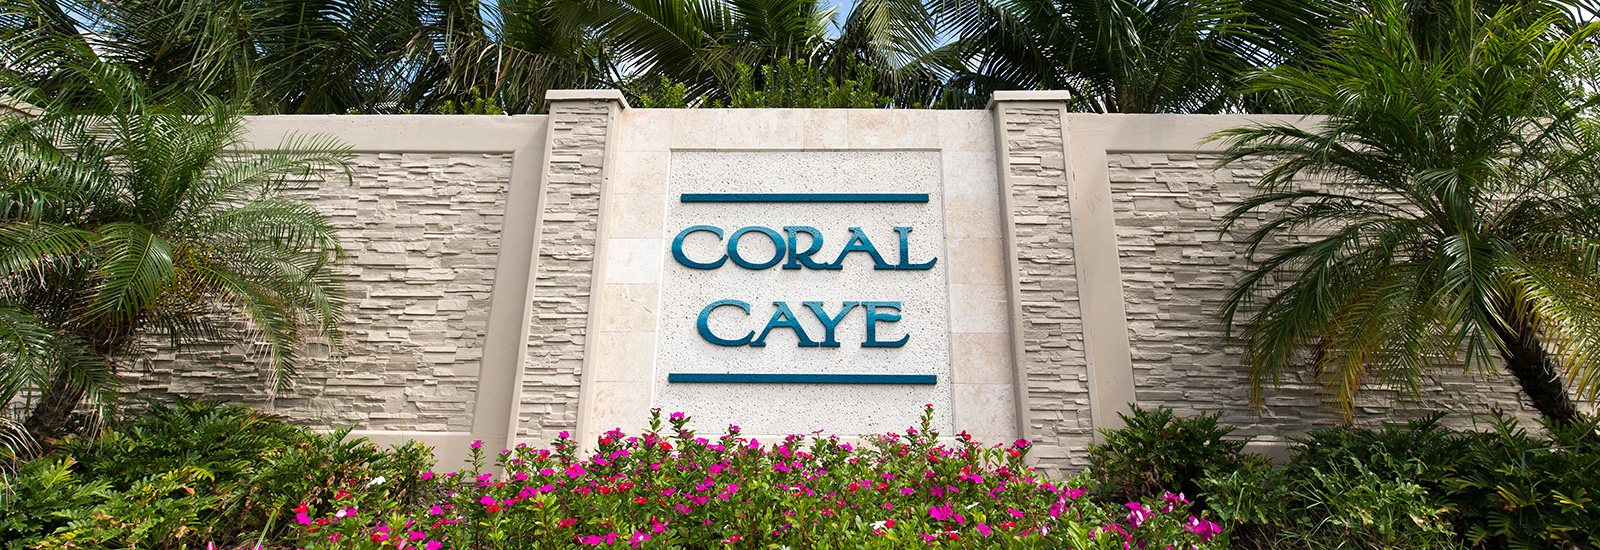 1600x550-CoralCaye-entrance.jpg